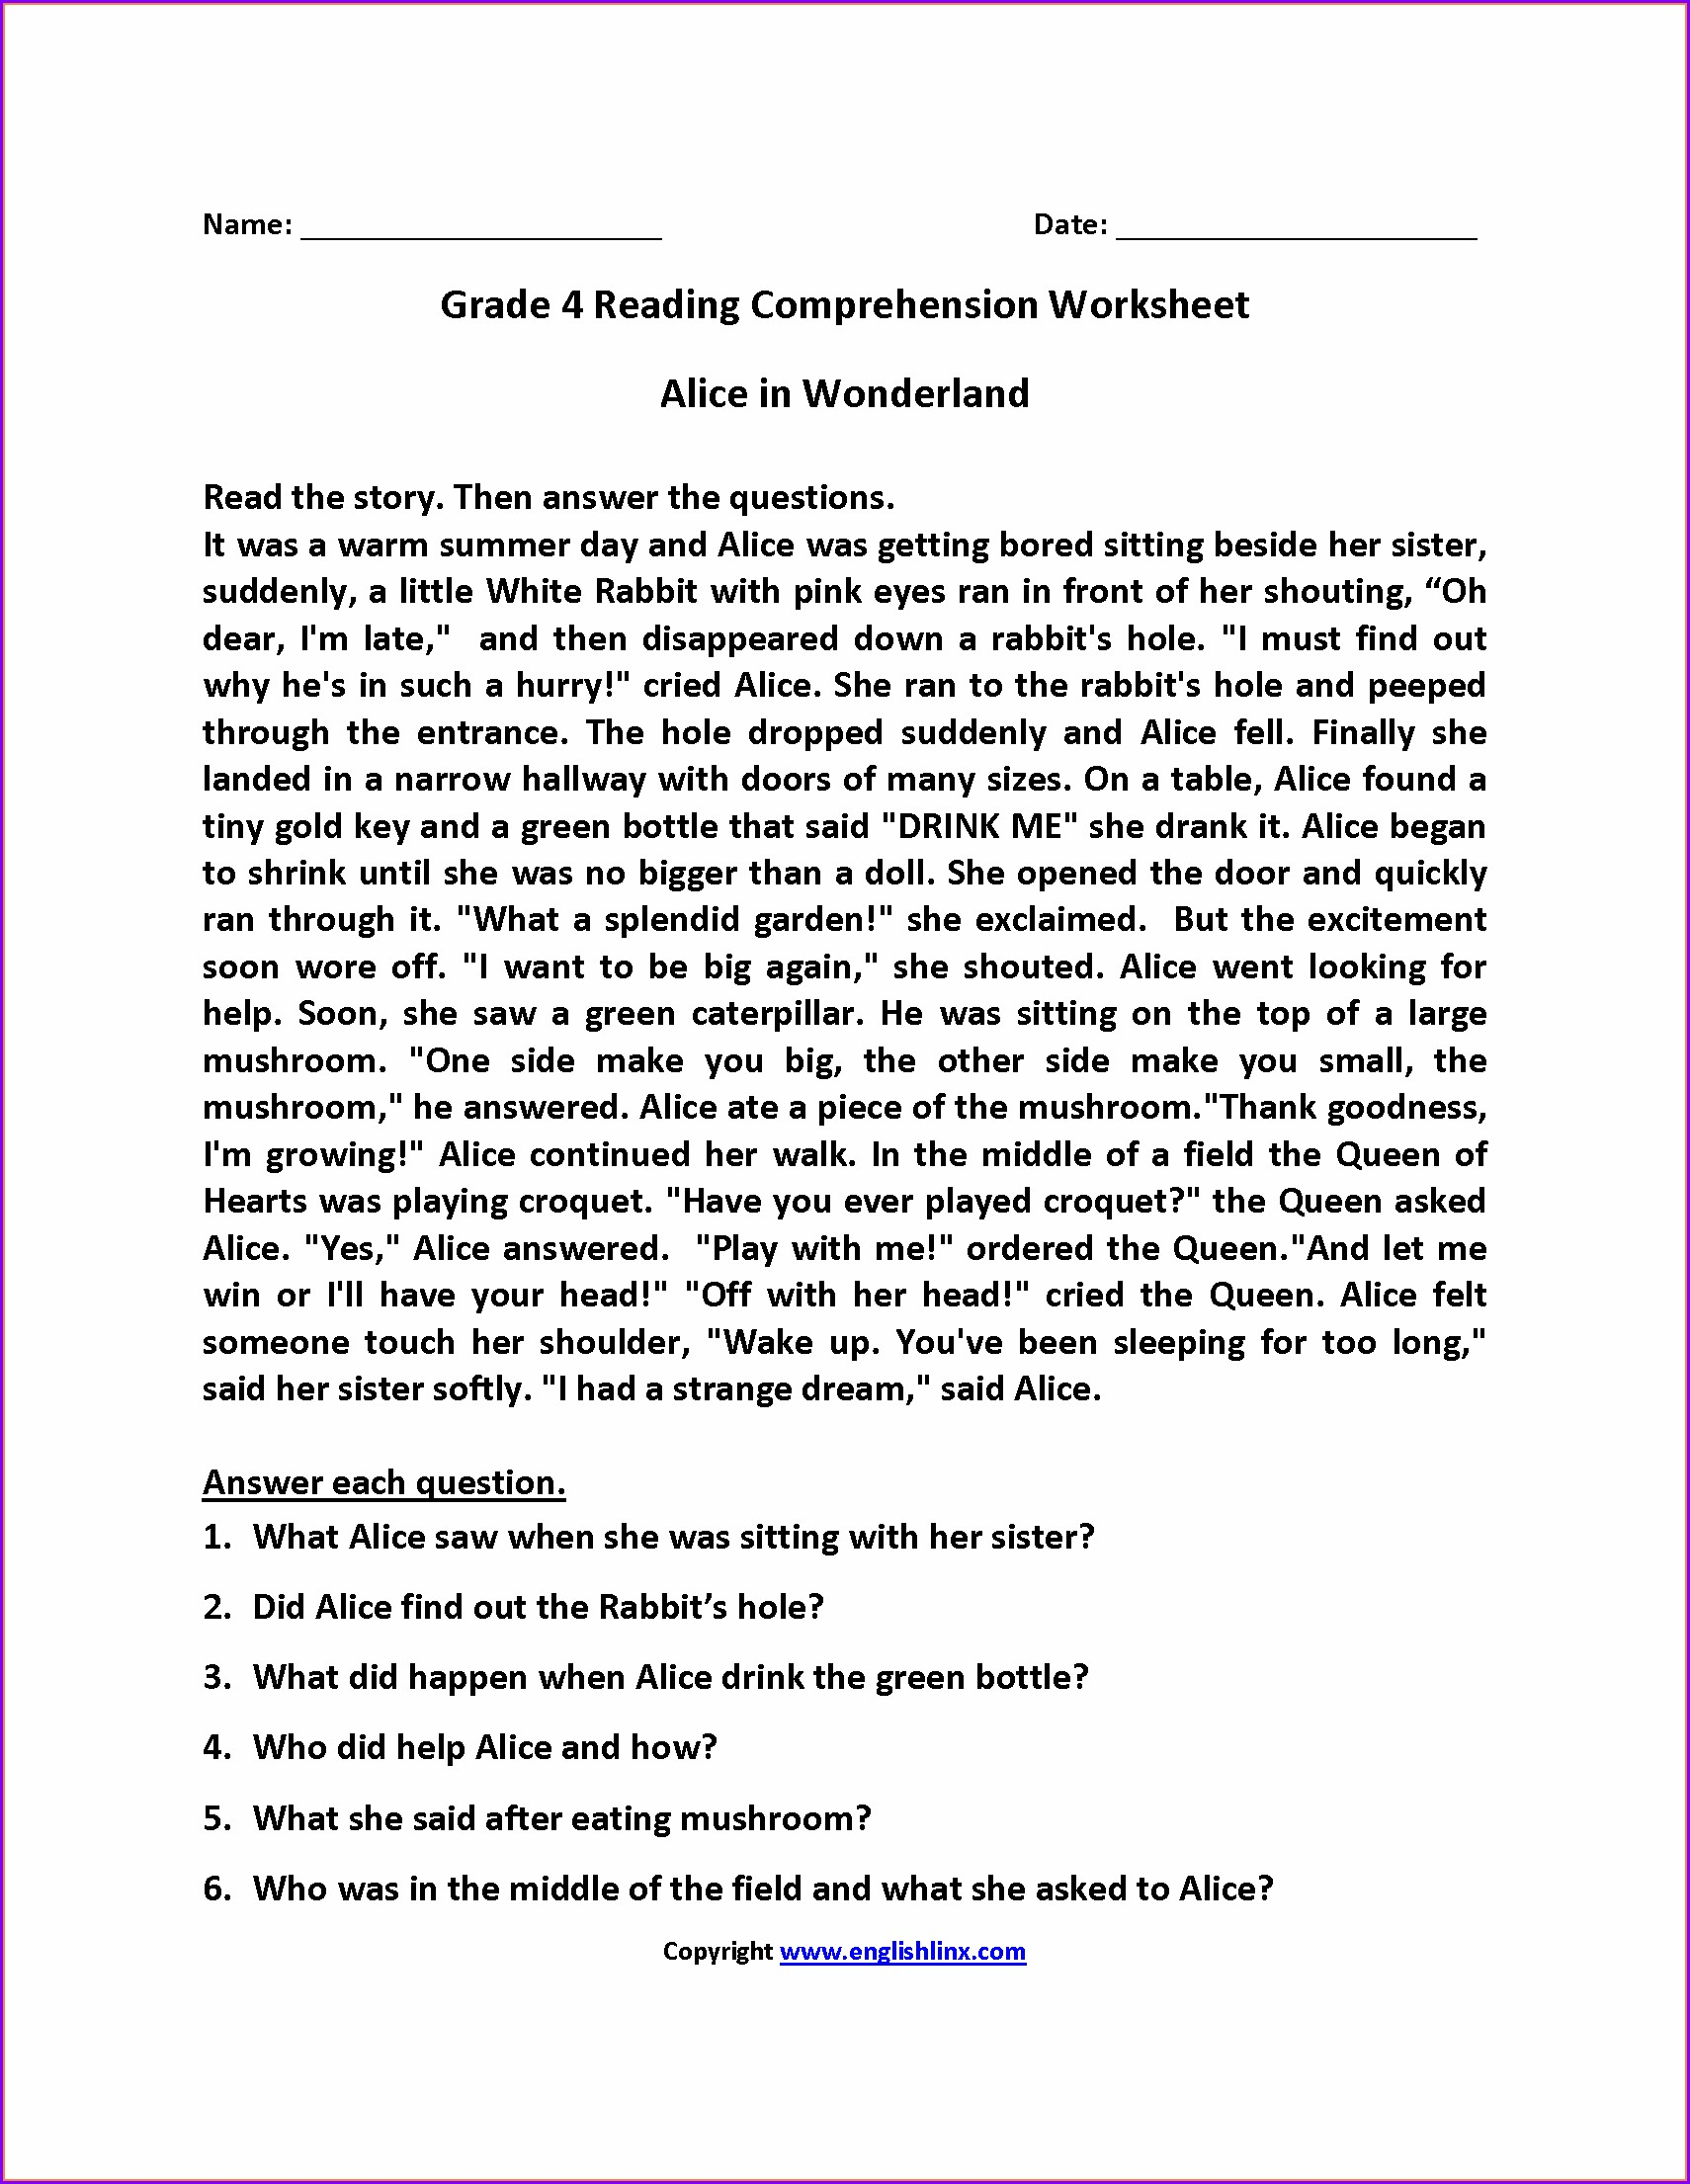 Reading Comprehension Worksheet Grade 4